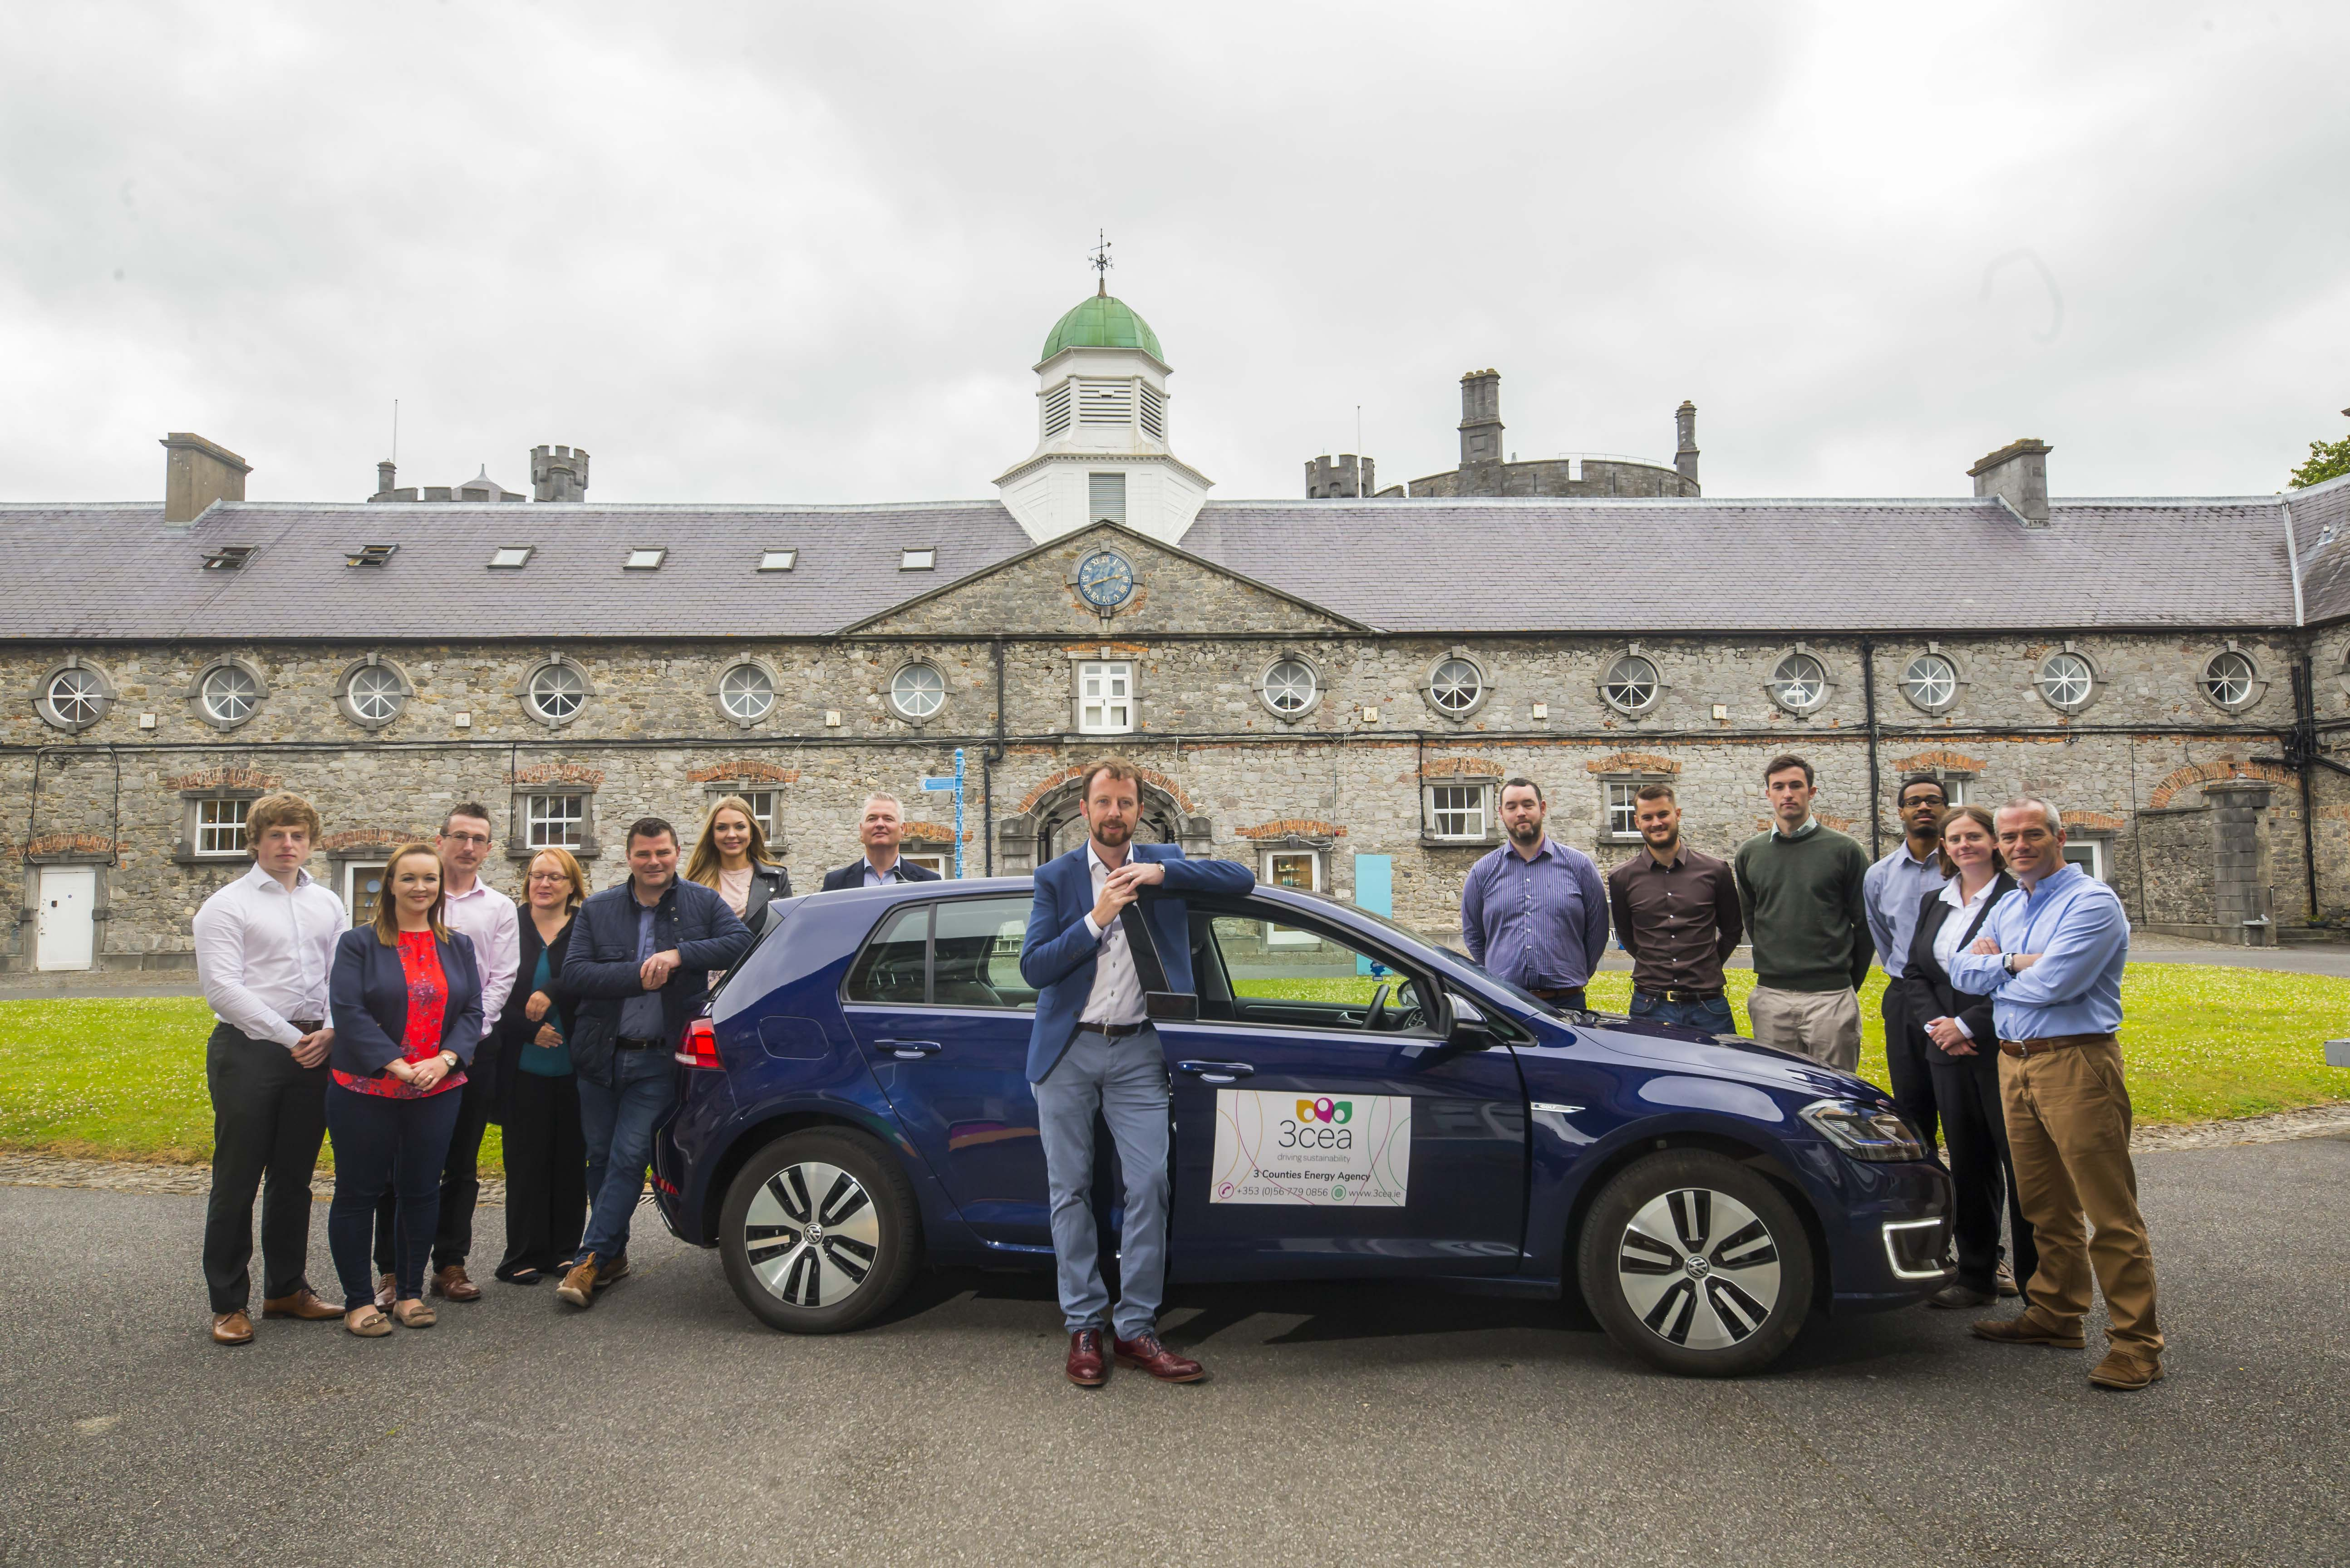 Kilkenny-headquartered 3CEA bids to create Ireland's first 'near zero emissions' zone